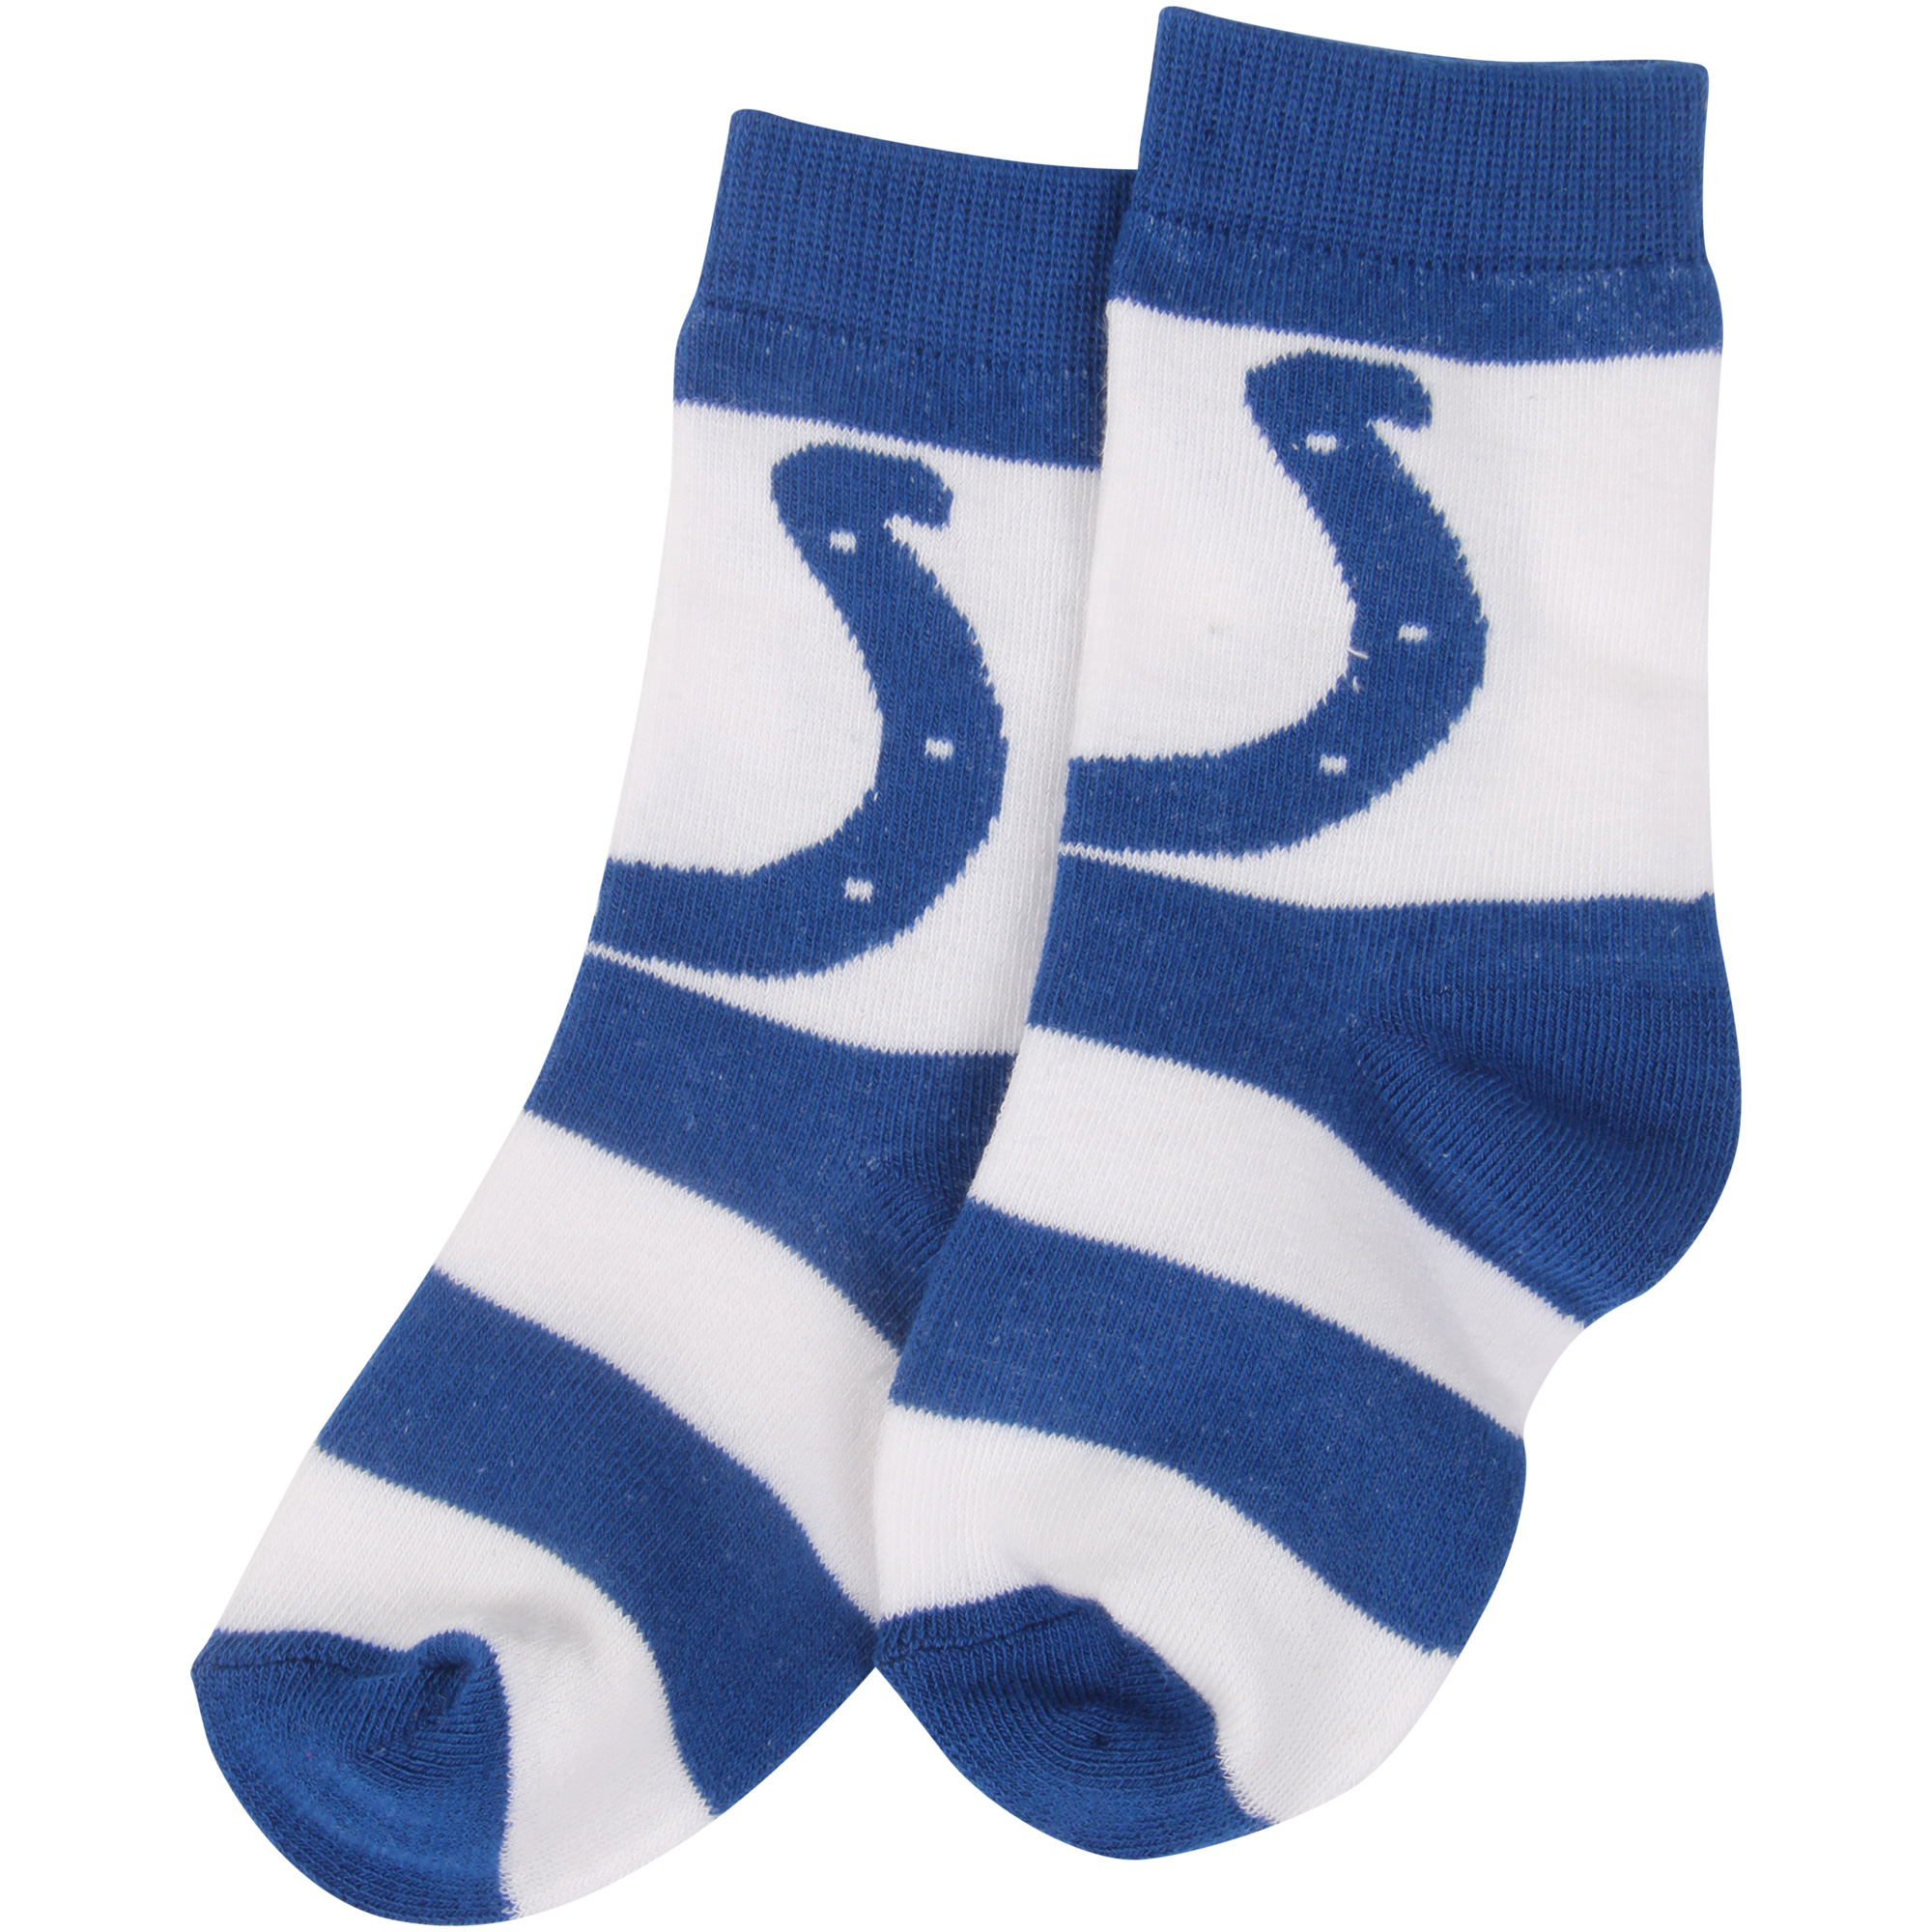 Indianapolis Colts For Bare Feet Toddler Rugby Block Socks - No Size